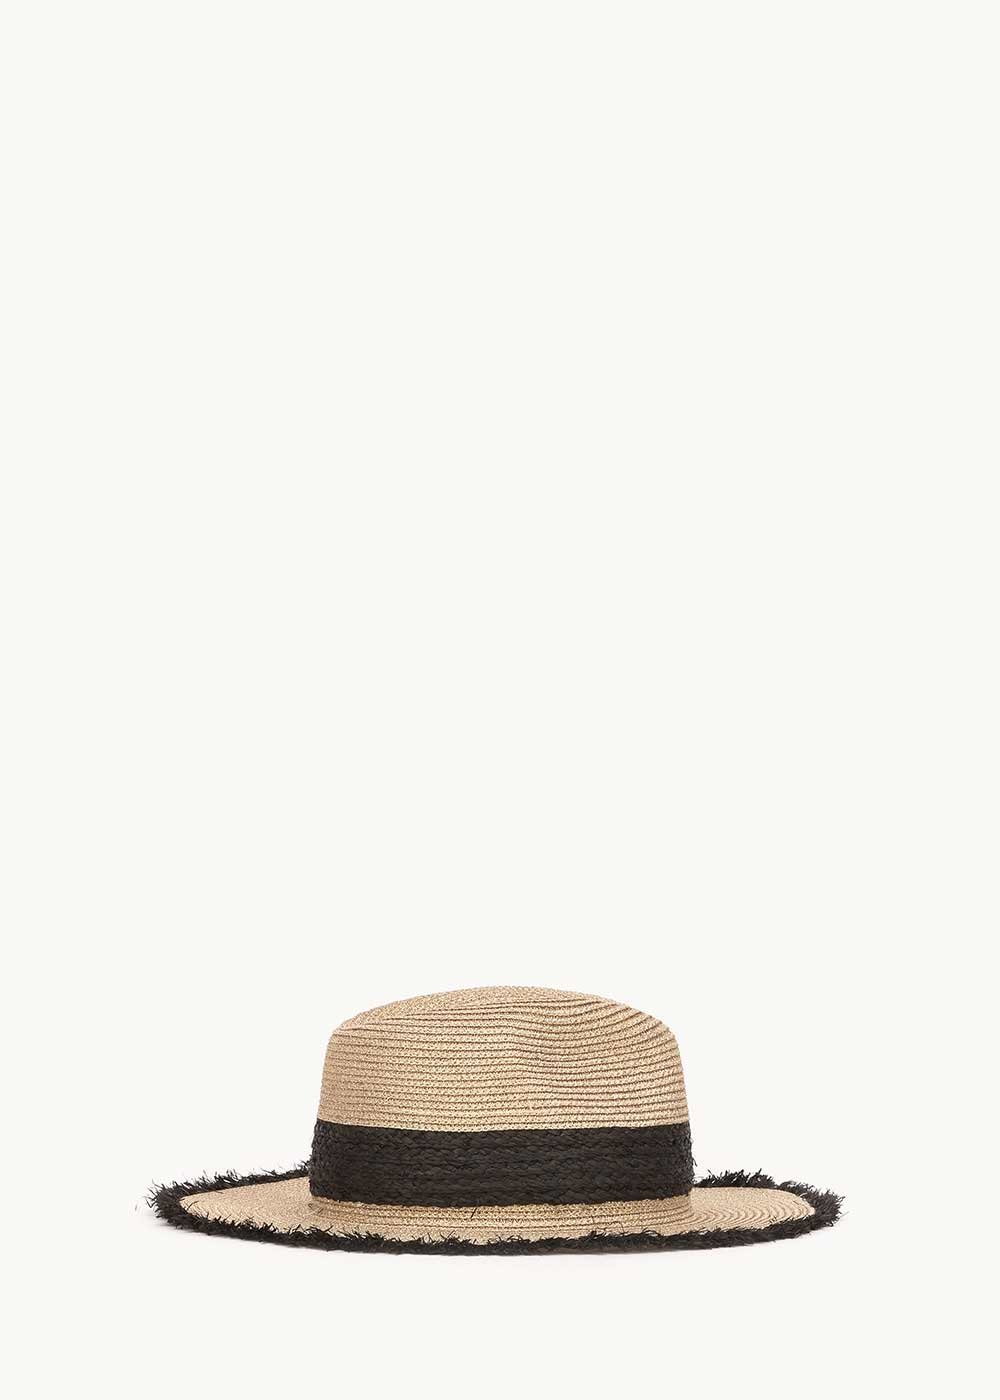 Cadys hat with contrasting black band - Light Beige - Woman